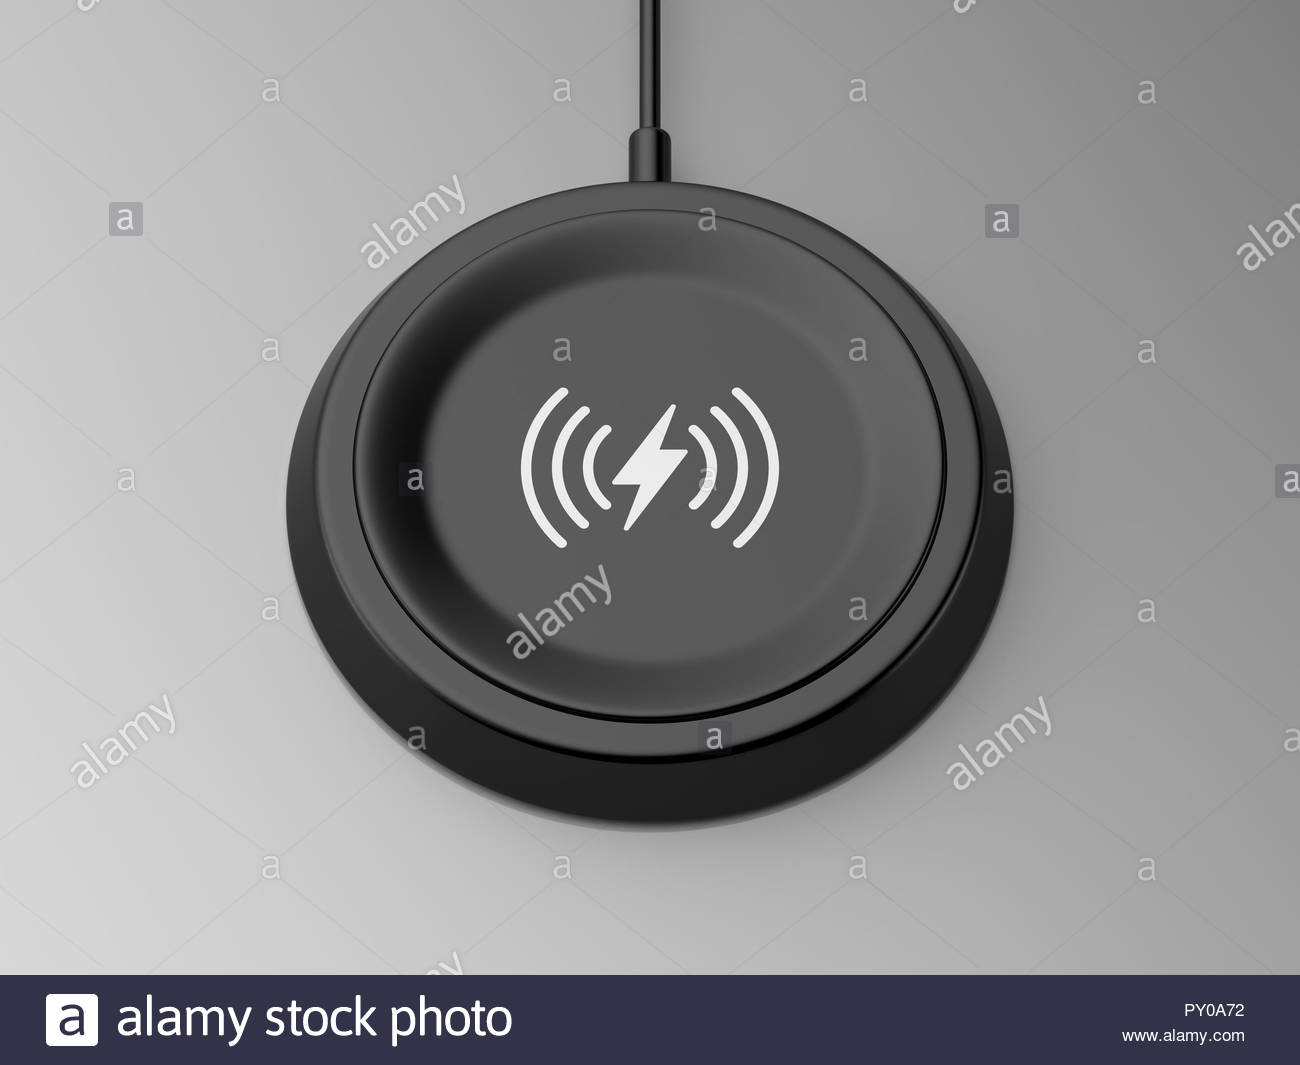 3d rendered angled view of a black wireless charger with a bevelled edge and recessed base on a grey background. - Stock Image